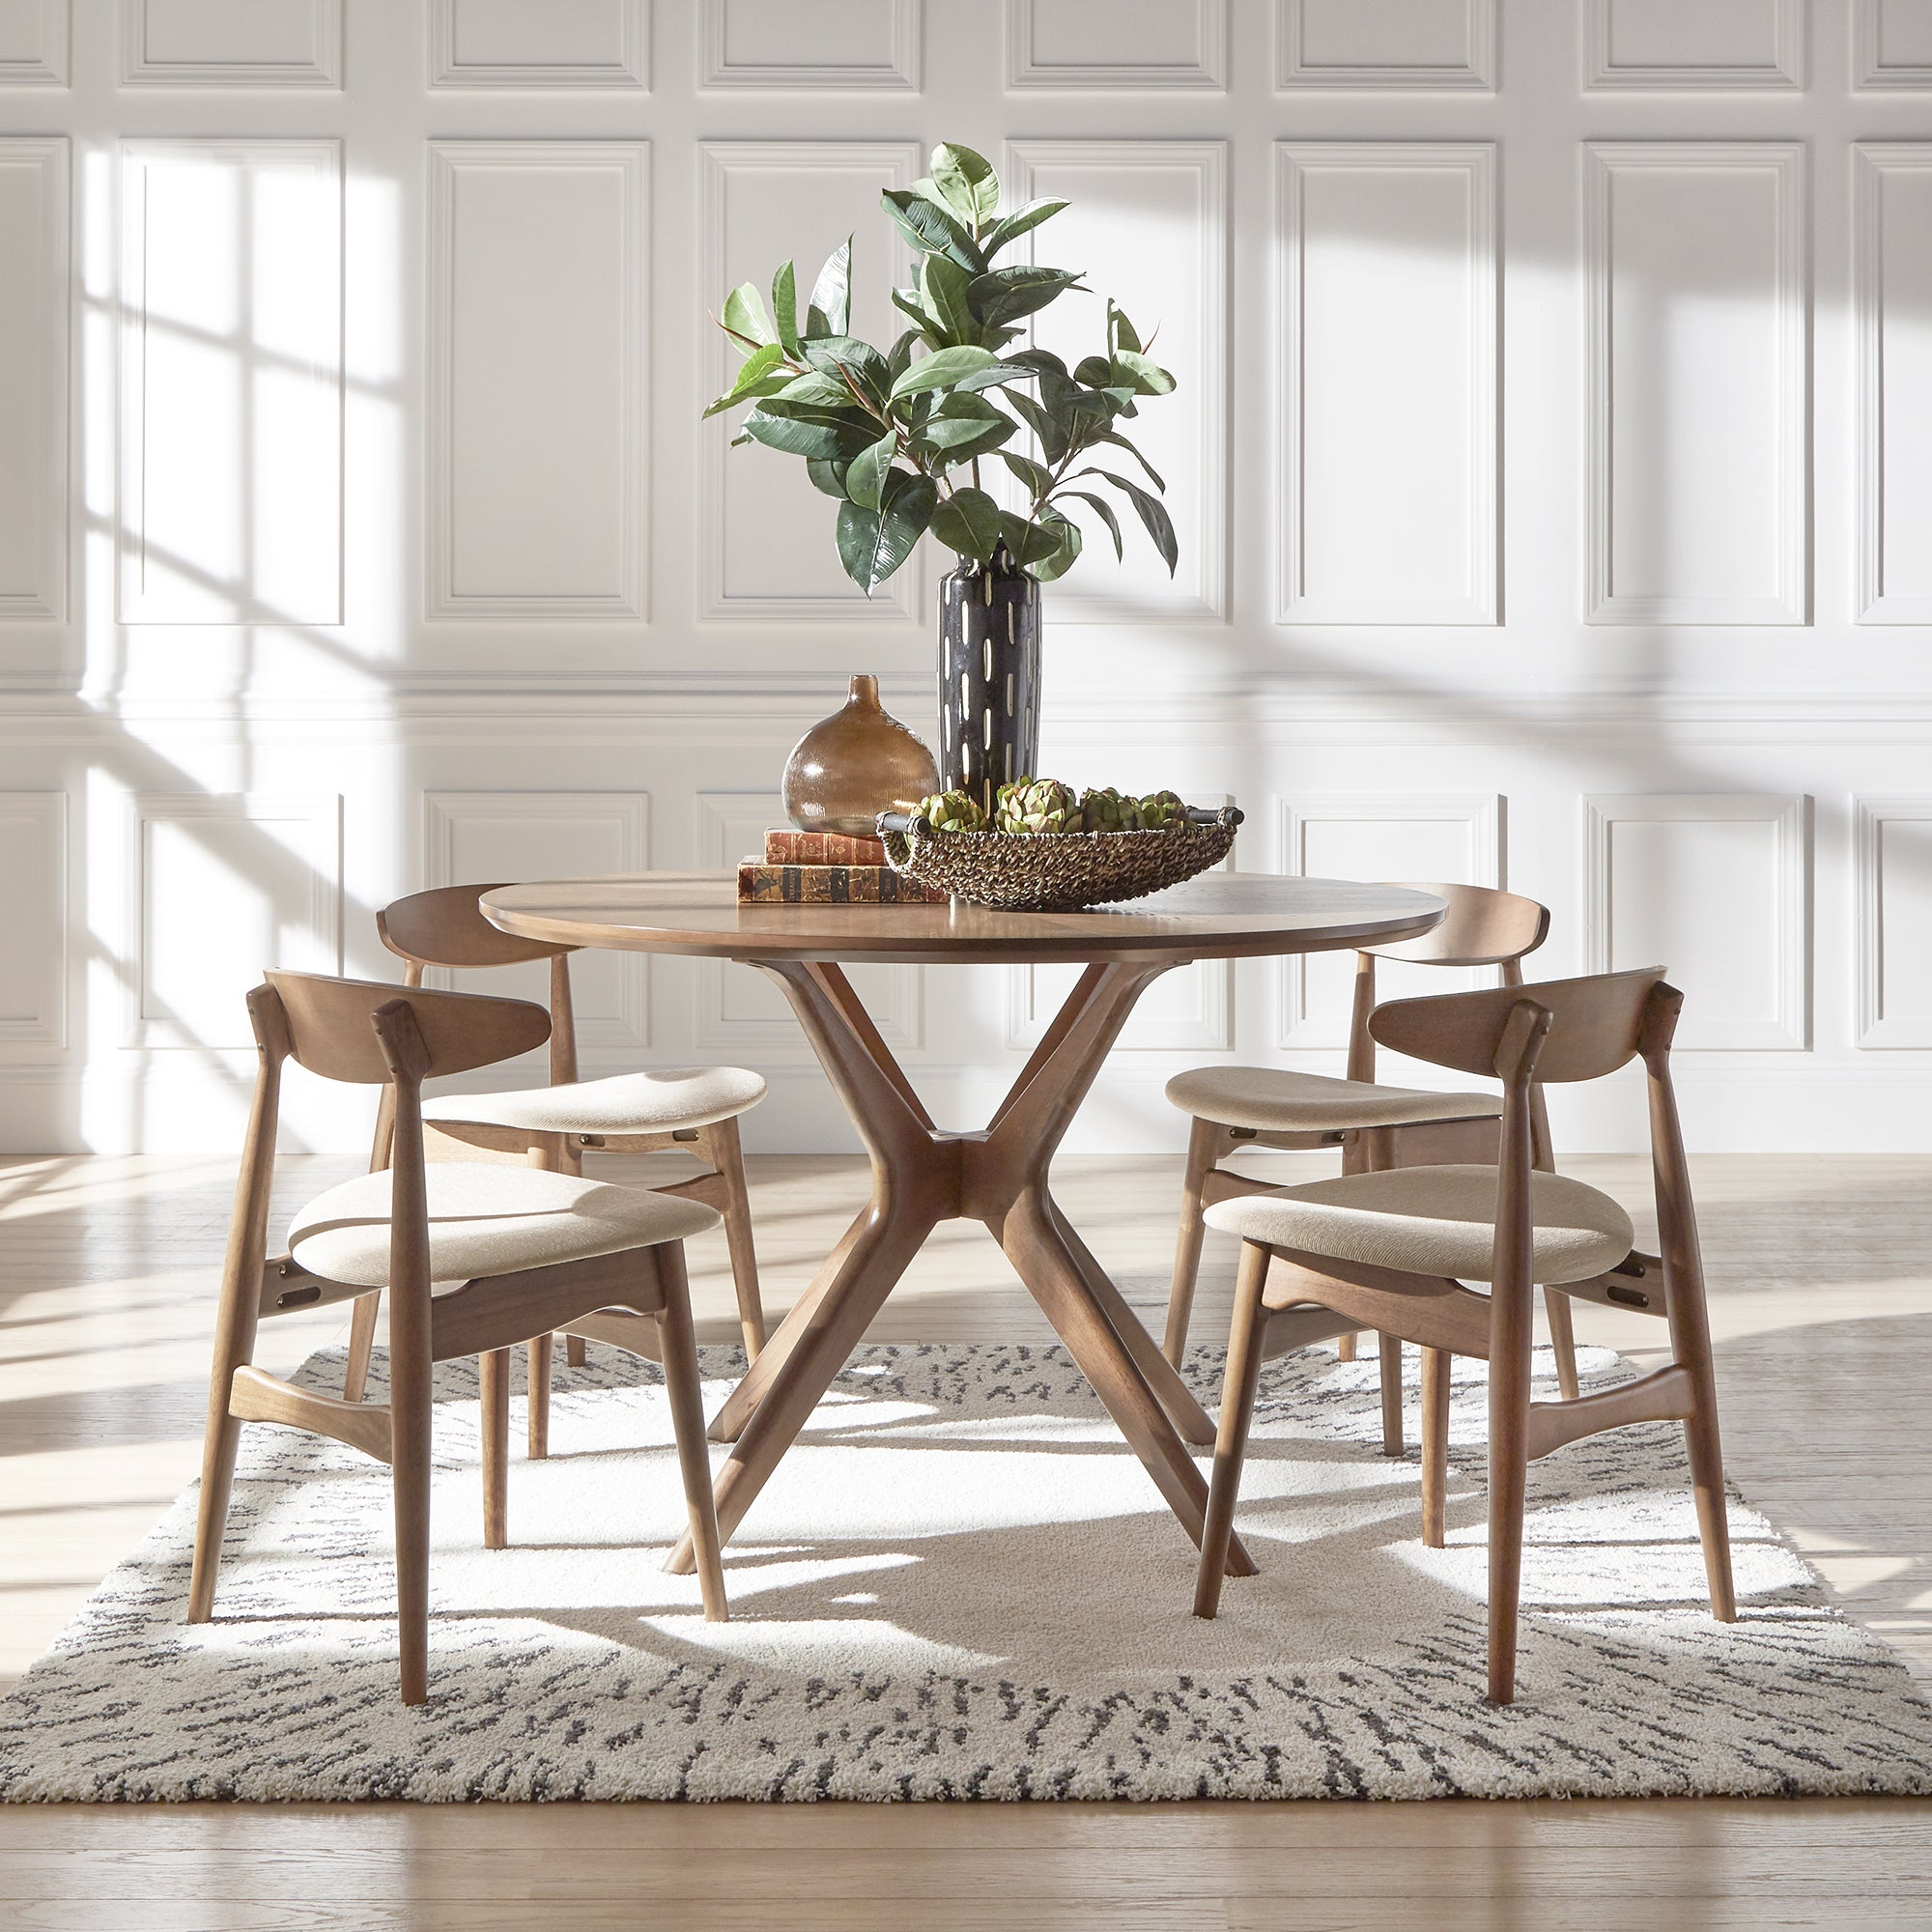 Nadine Walnut Finish Round Dining Set - Curved Back Chairs by iNSPIRE Q  Modern - Free Shipping Today - Overstock.com - 24359999